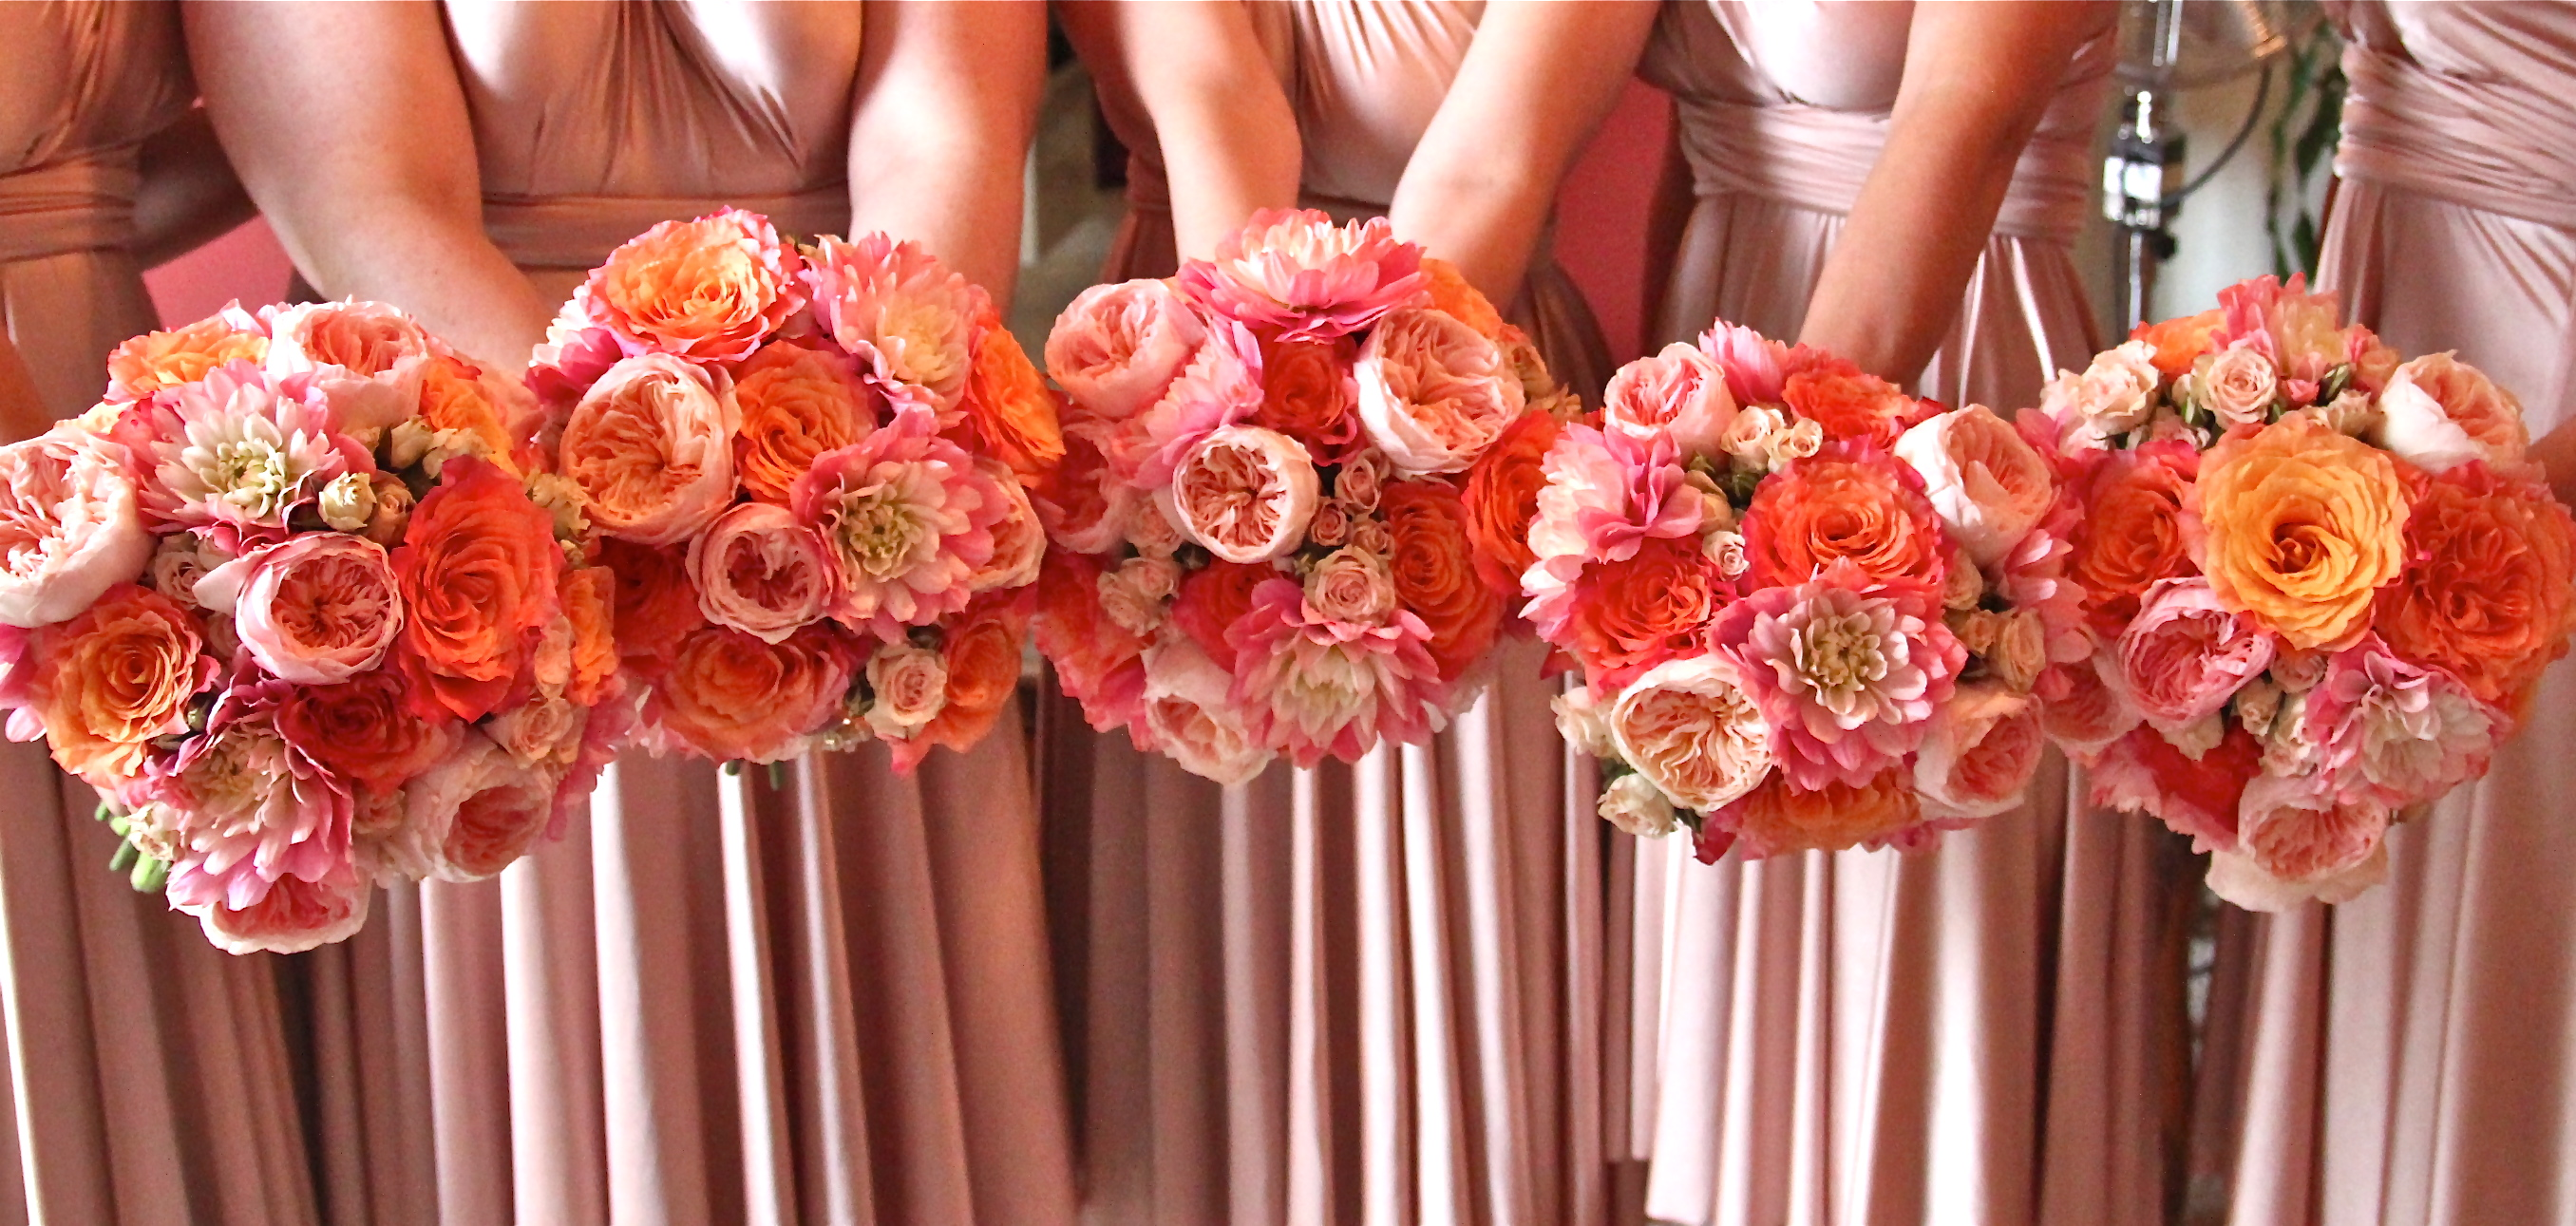 coral and peach bridesmaids bouquets of garden roses spray roses dahlias pop against the